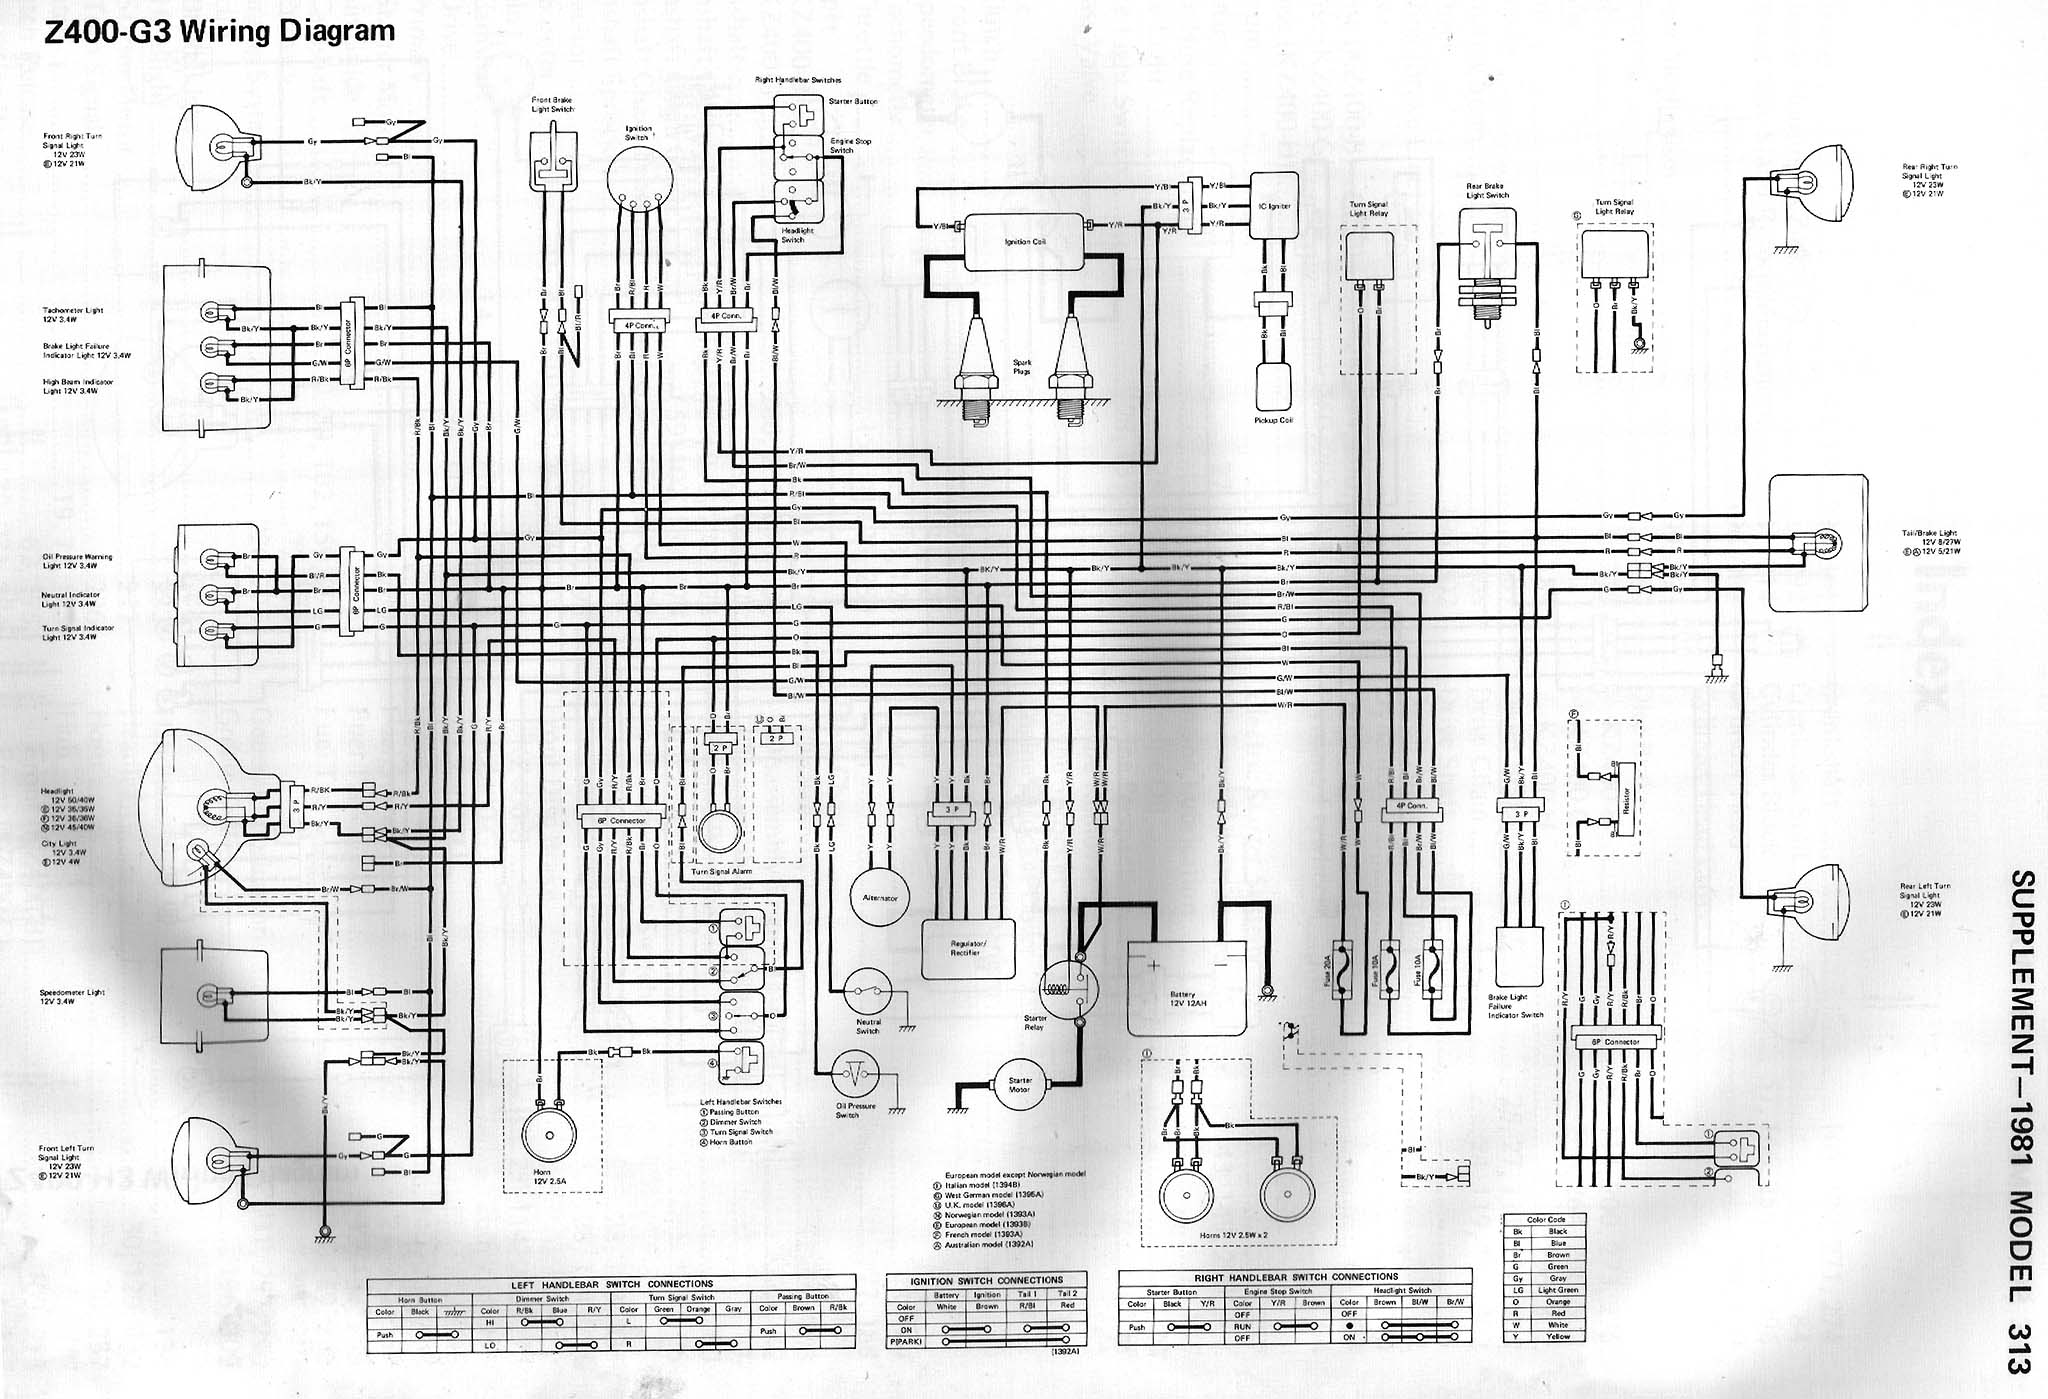 G32 Wiring Diagram - Wiring Diagram •